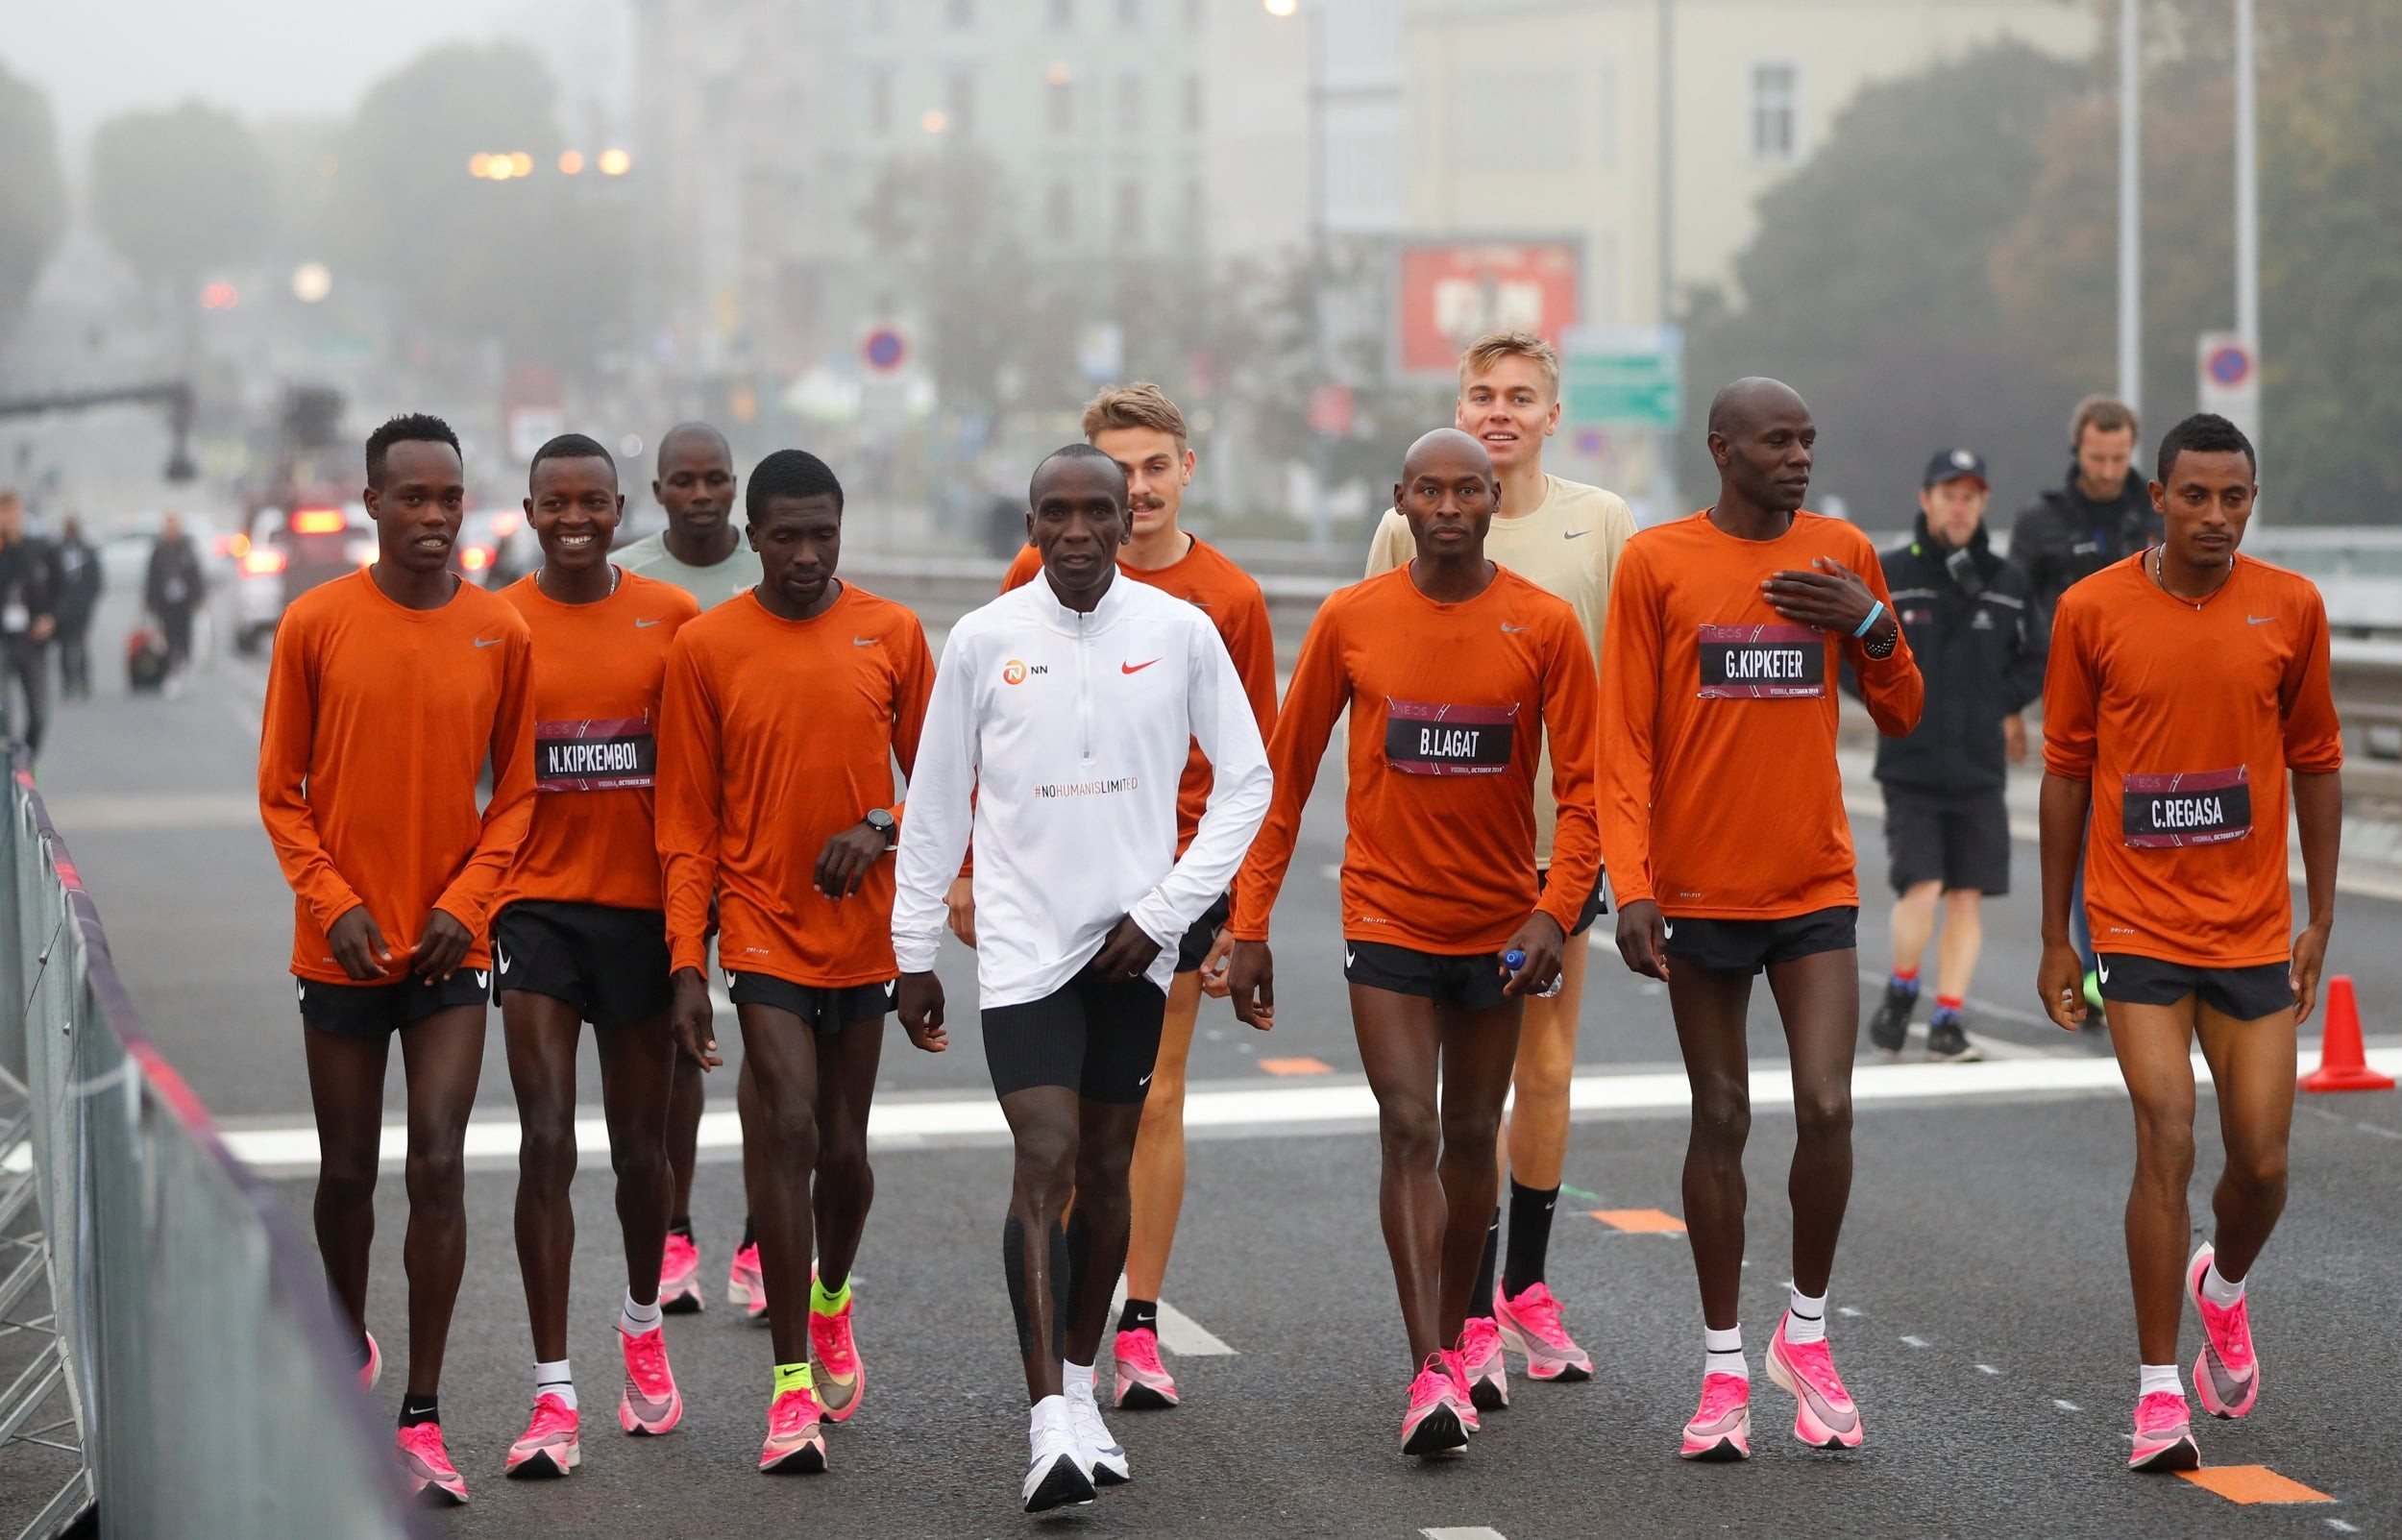 Eliud Kipchoge says that Nike shoes do not give runners an unfair advantage